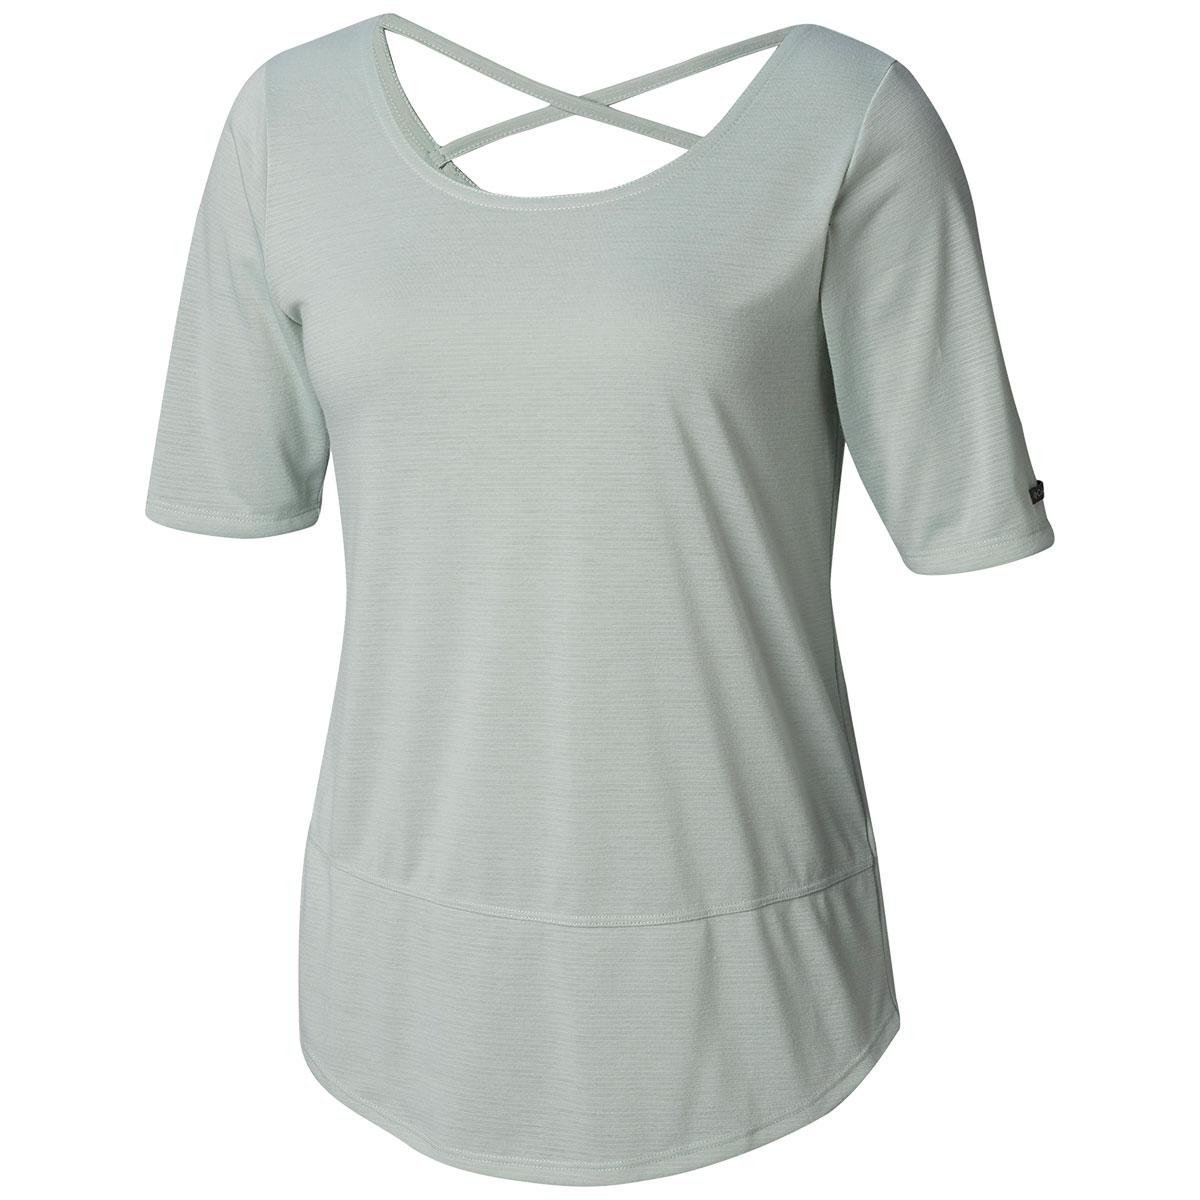 Columbia Women's Anytime Casual Short-Sleeve Shirt - Green, M